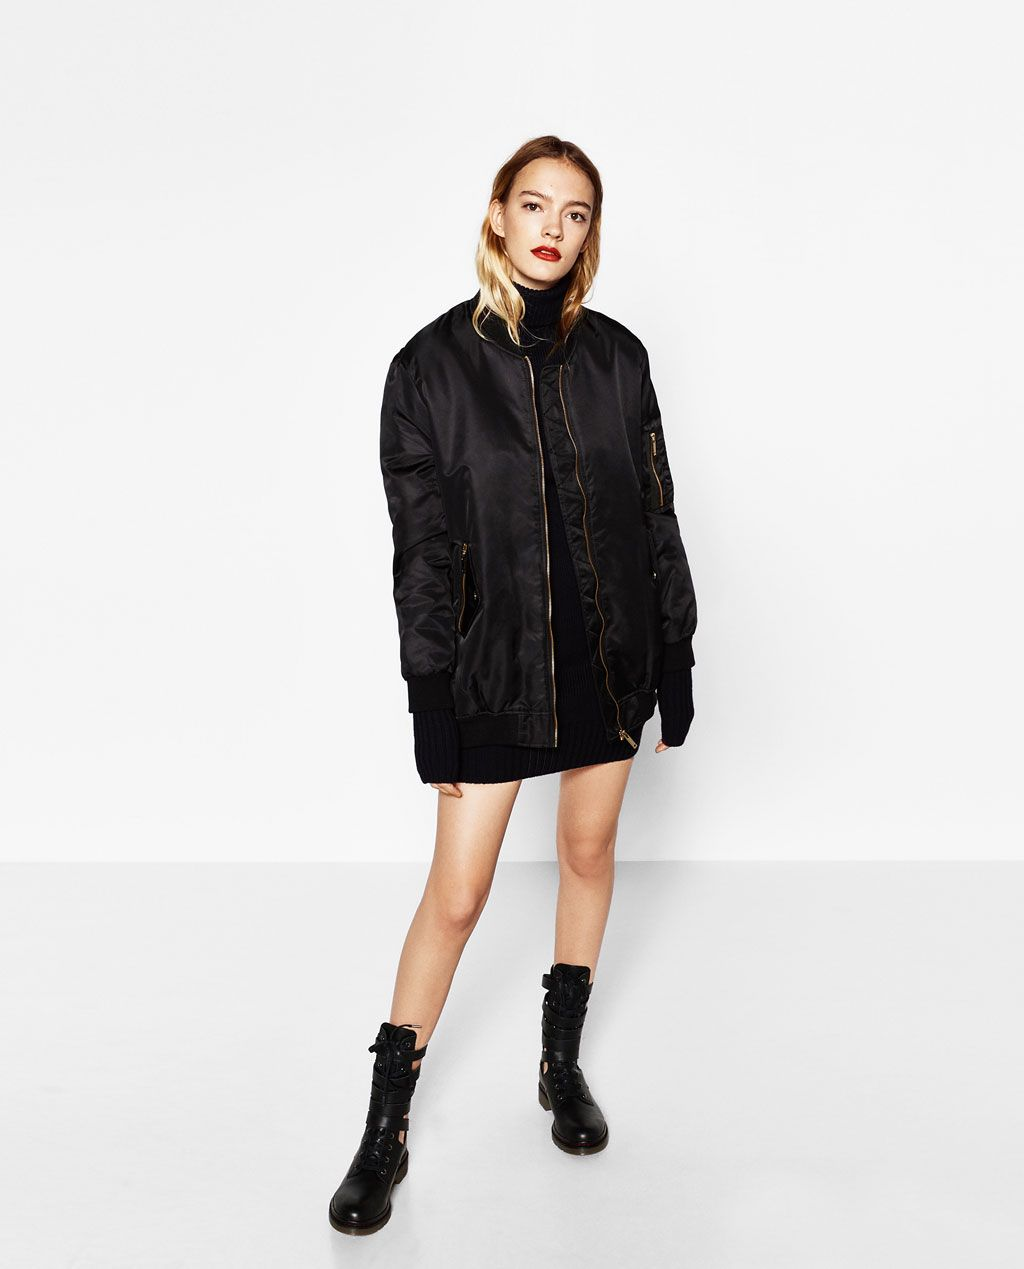 df6ce53e0a OVERSIZED BOMBER JACKET-View All-OUTERWEAR-WOMAN-SALE | ZARA ...